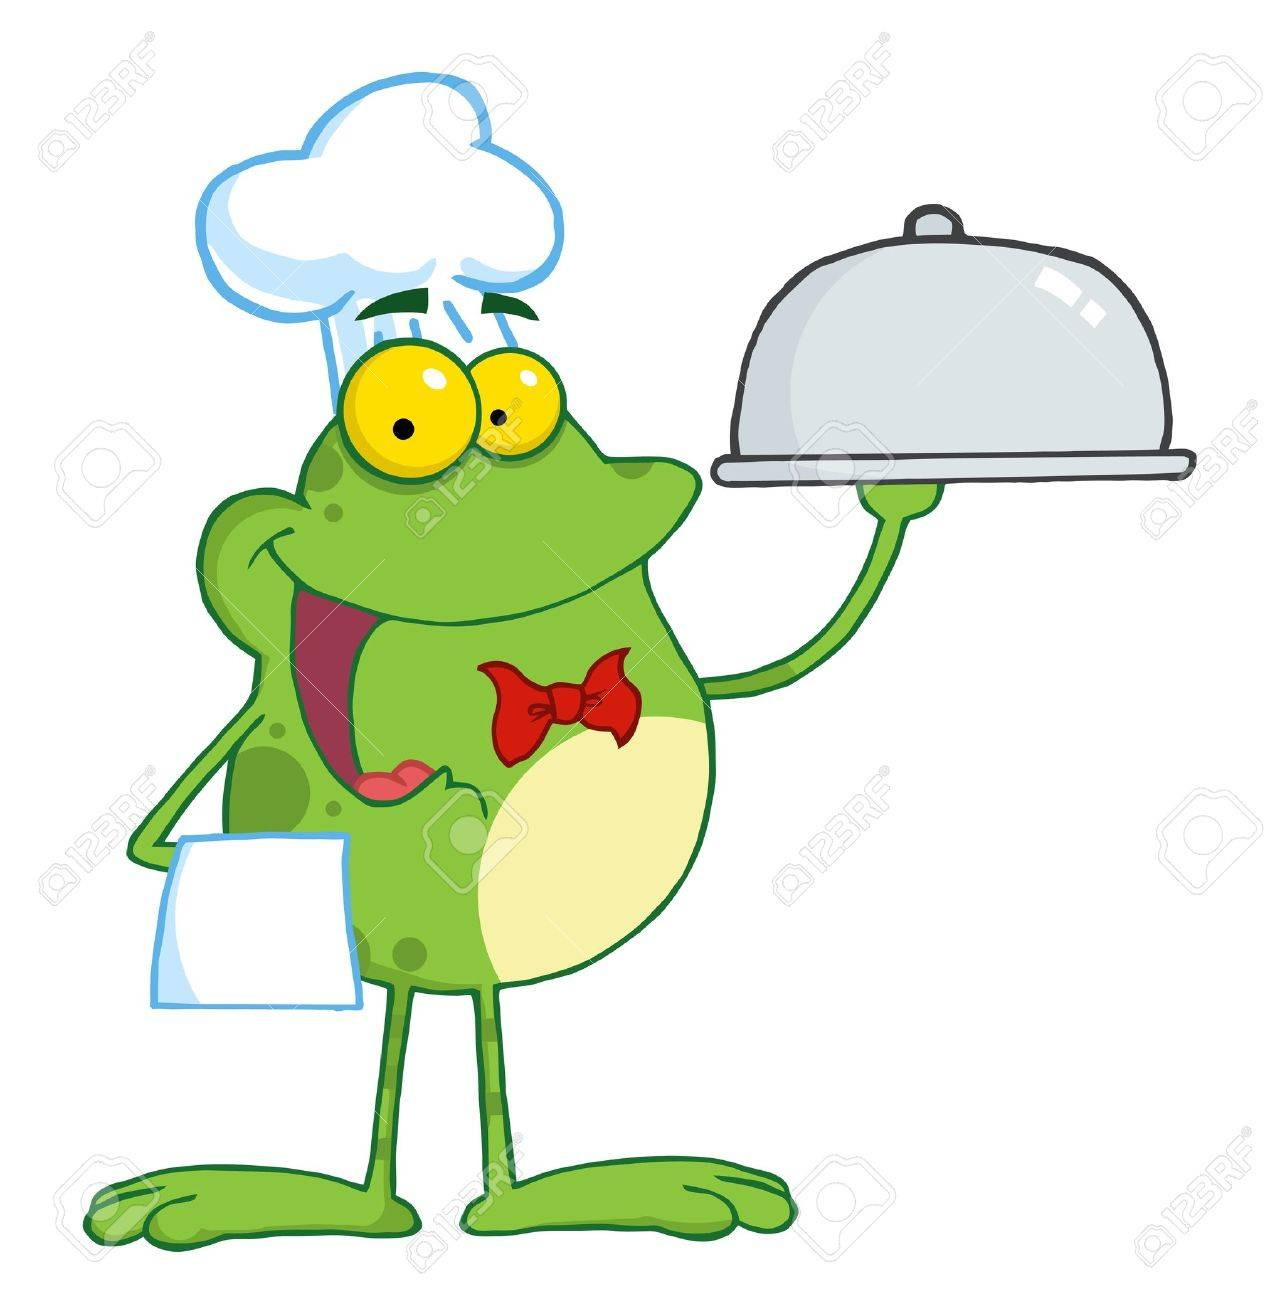 frog cartoon mascot character chef serving food in a sliver platter rh 123rf com Leaping Frog Clip Art Leaping Frog Clip Art